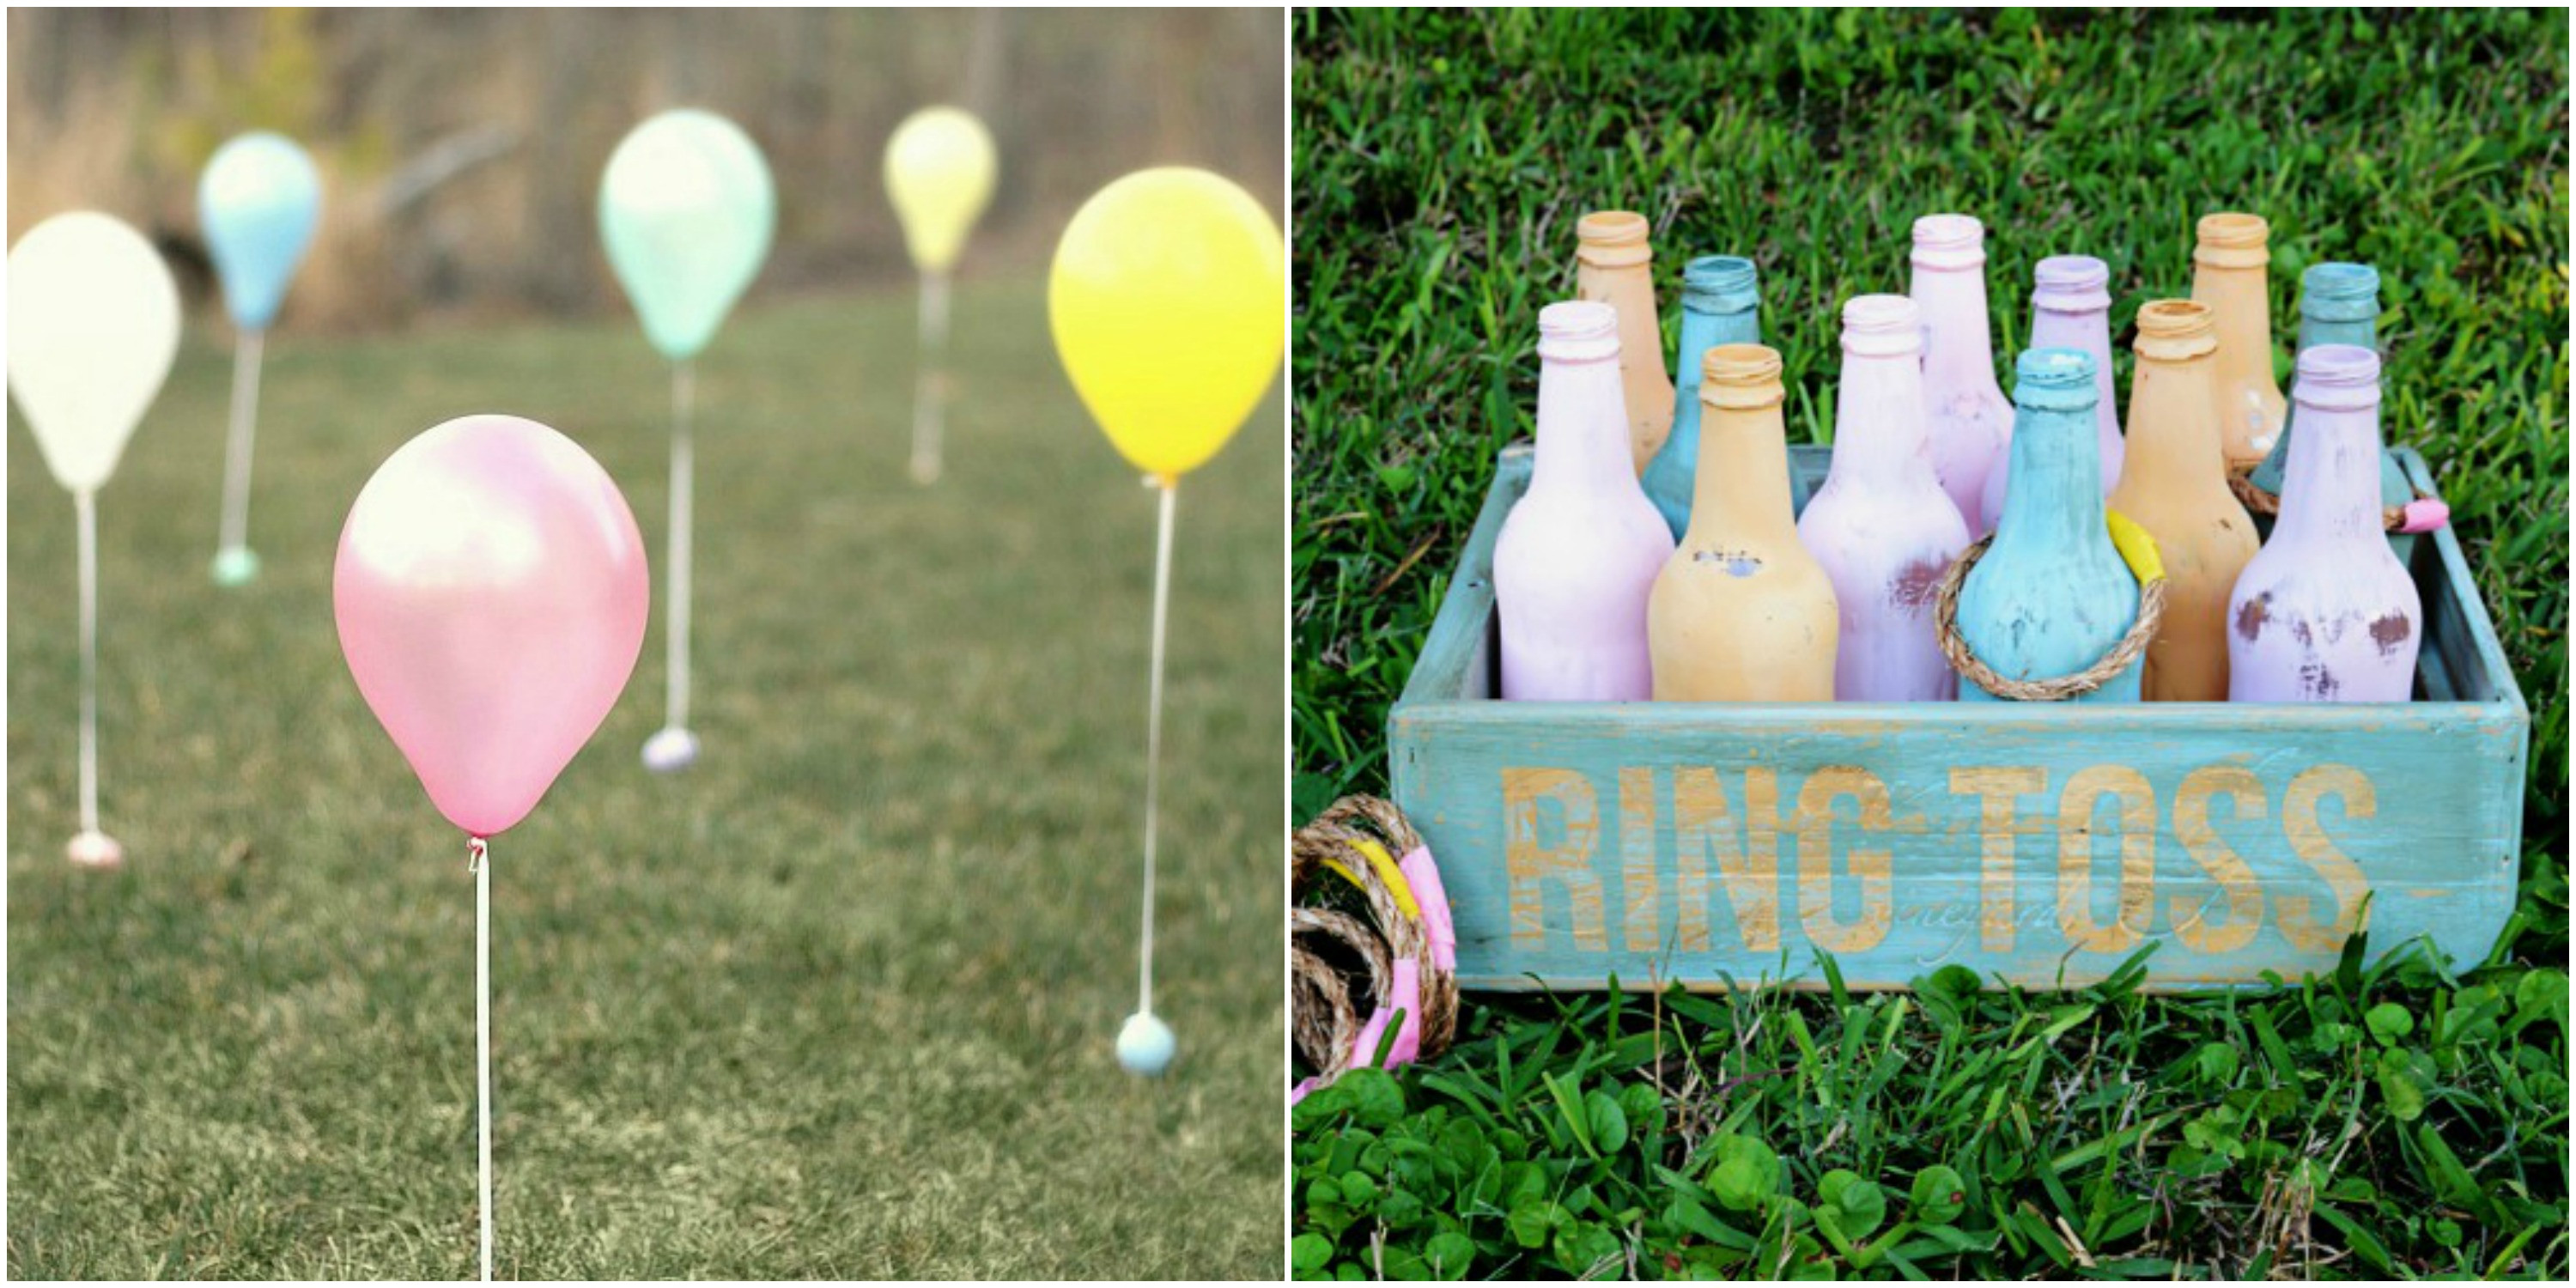 Easter Party Game Ideas Kids  10 Fun Easter Games for Kids Easy Ideas for Easter Party